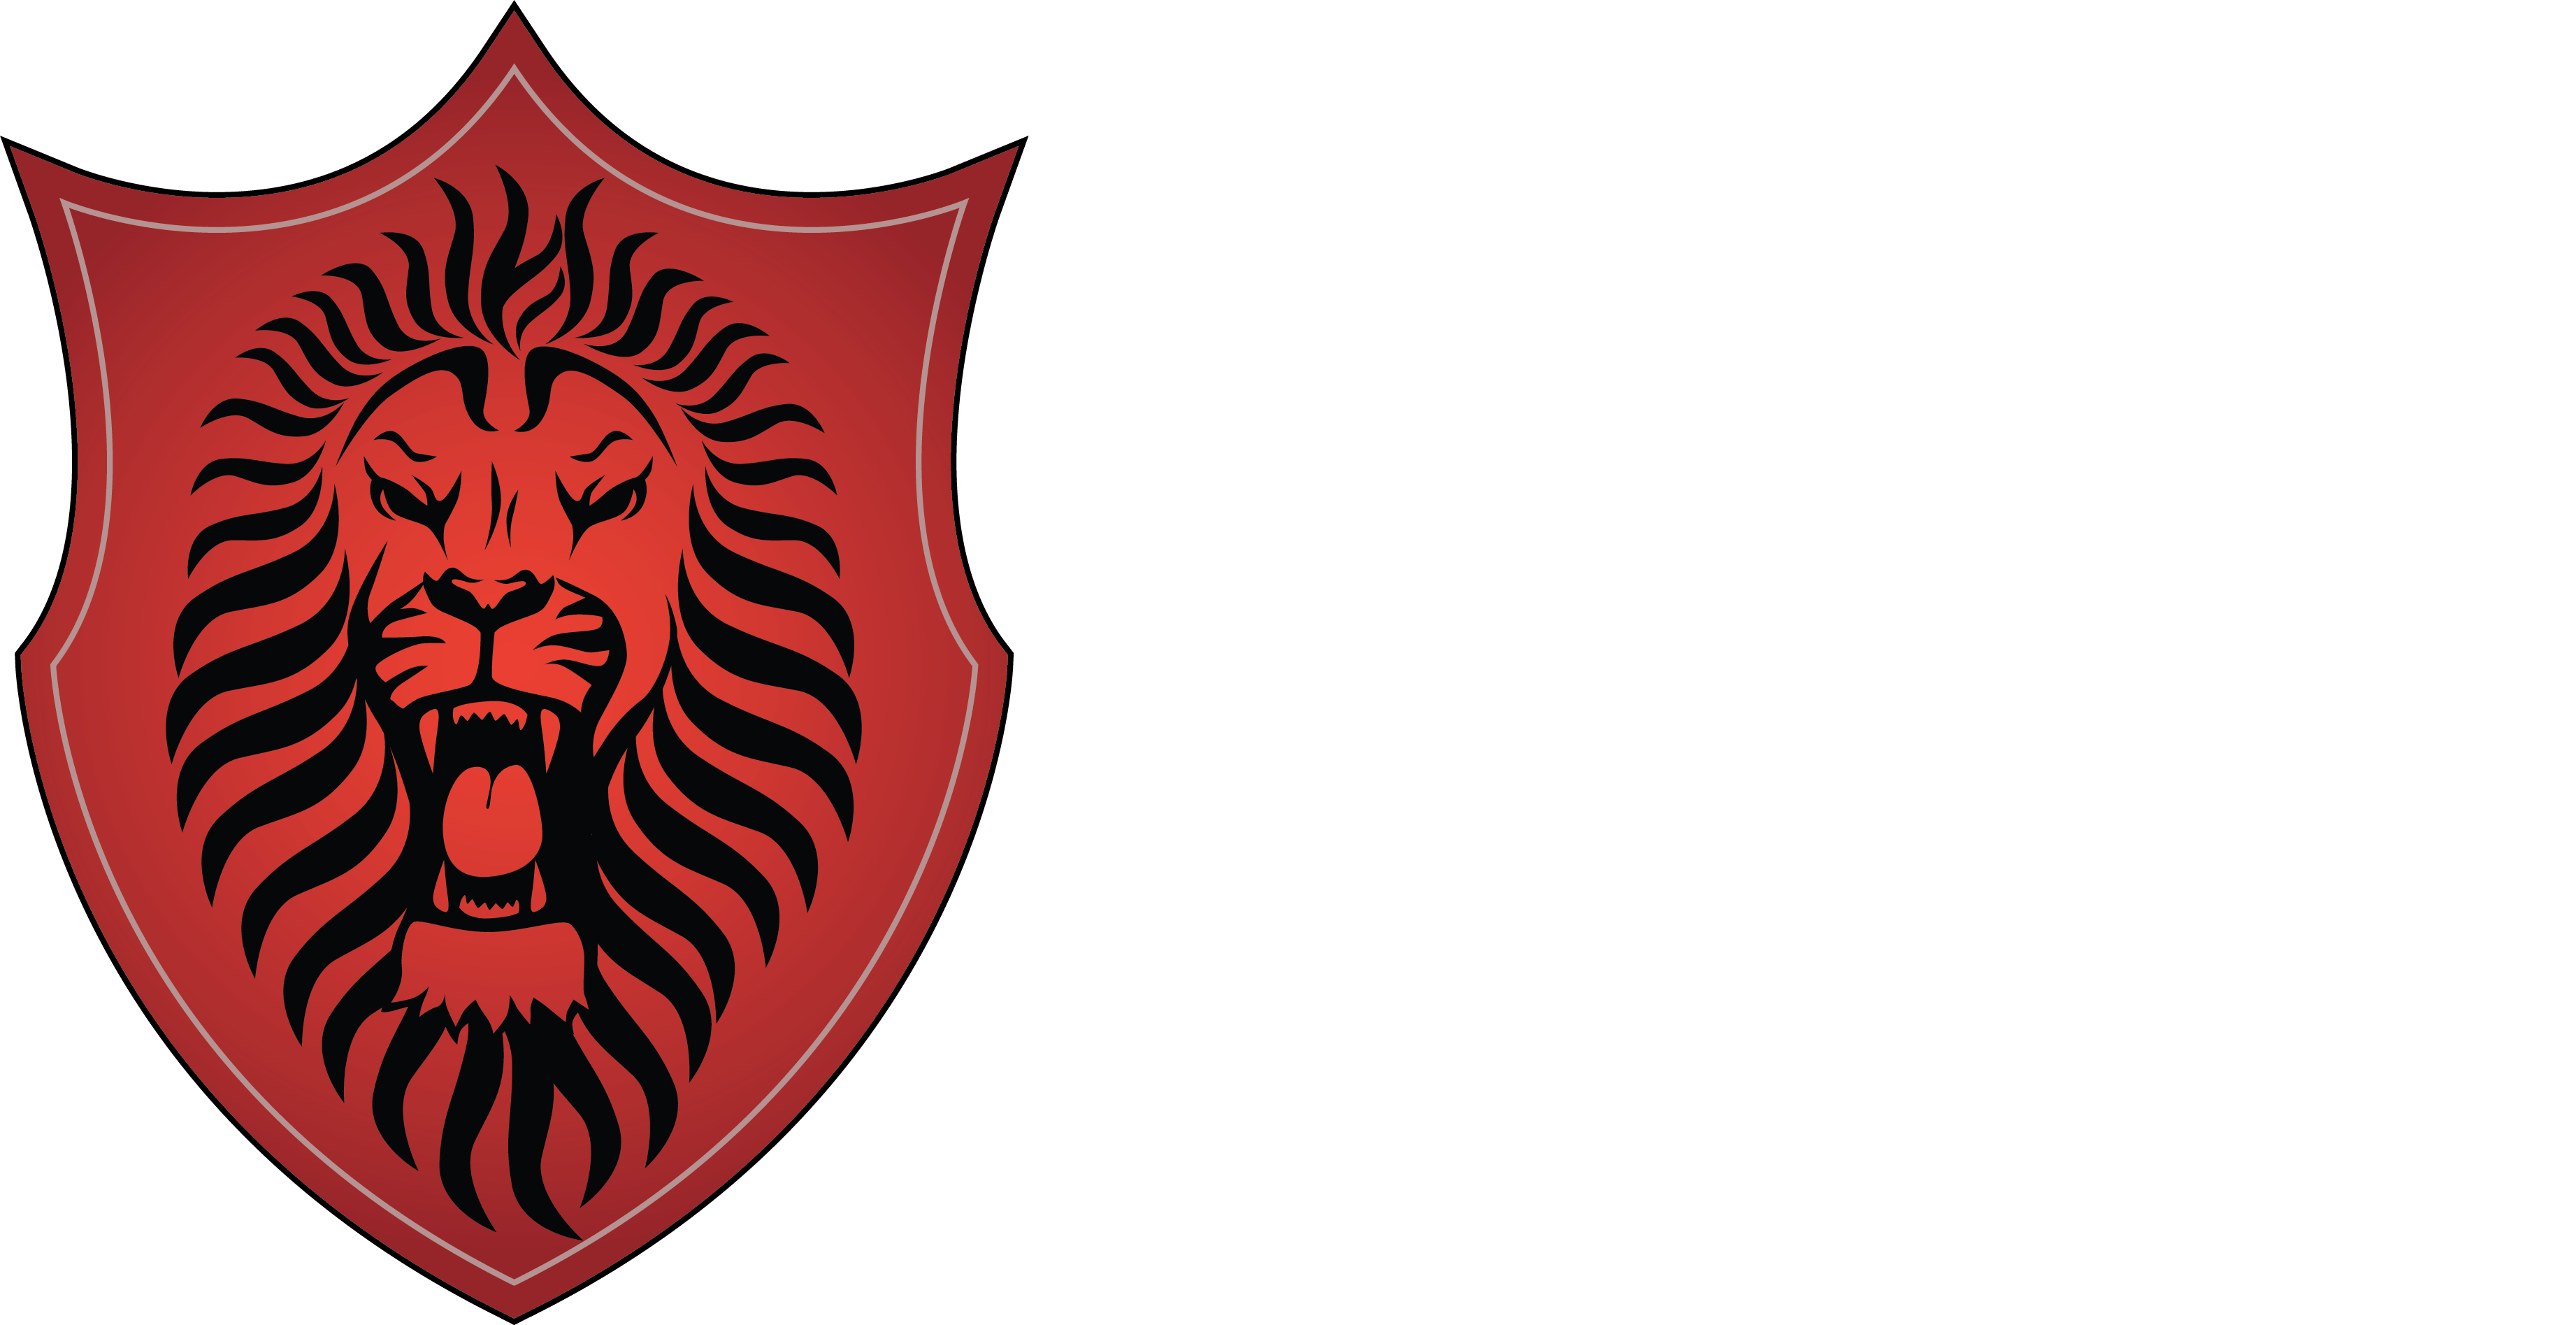 RNS Technology Services